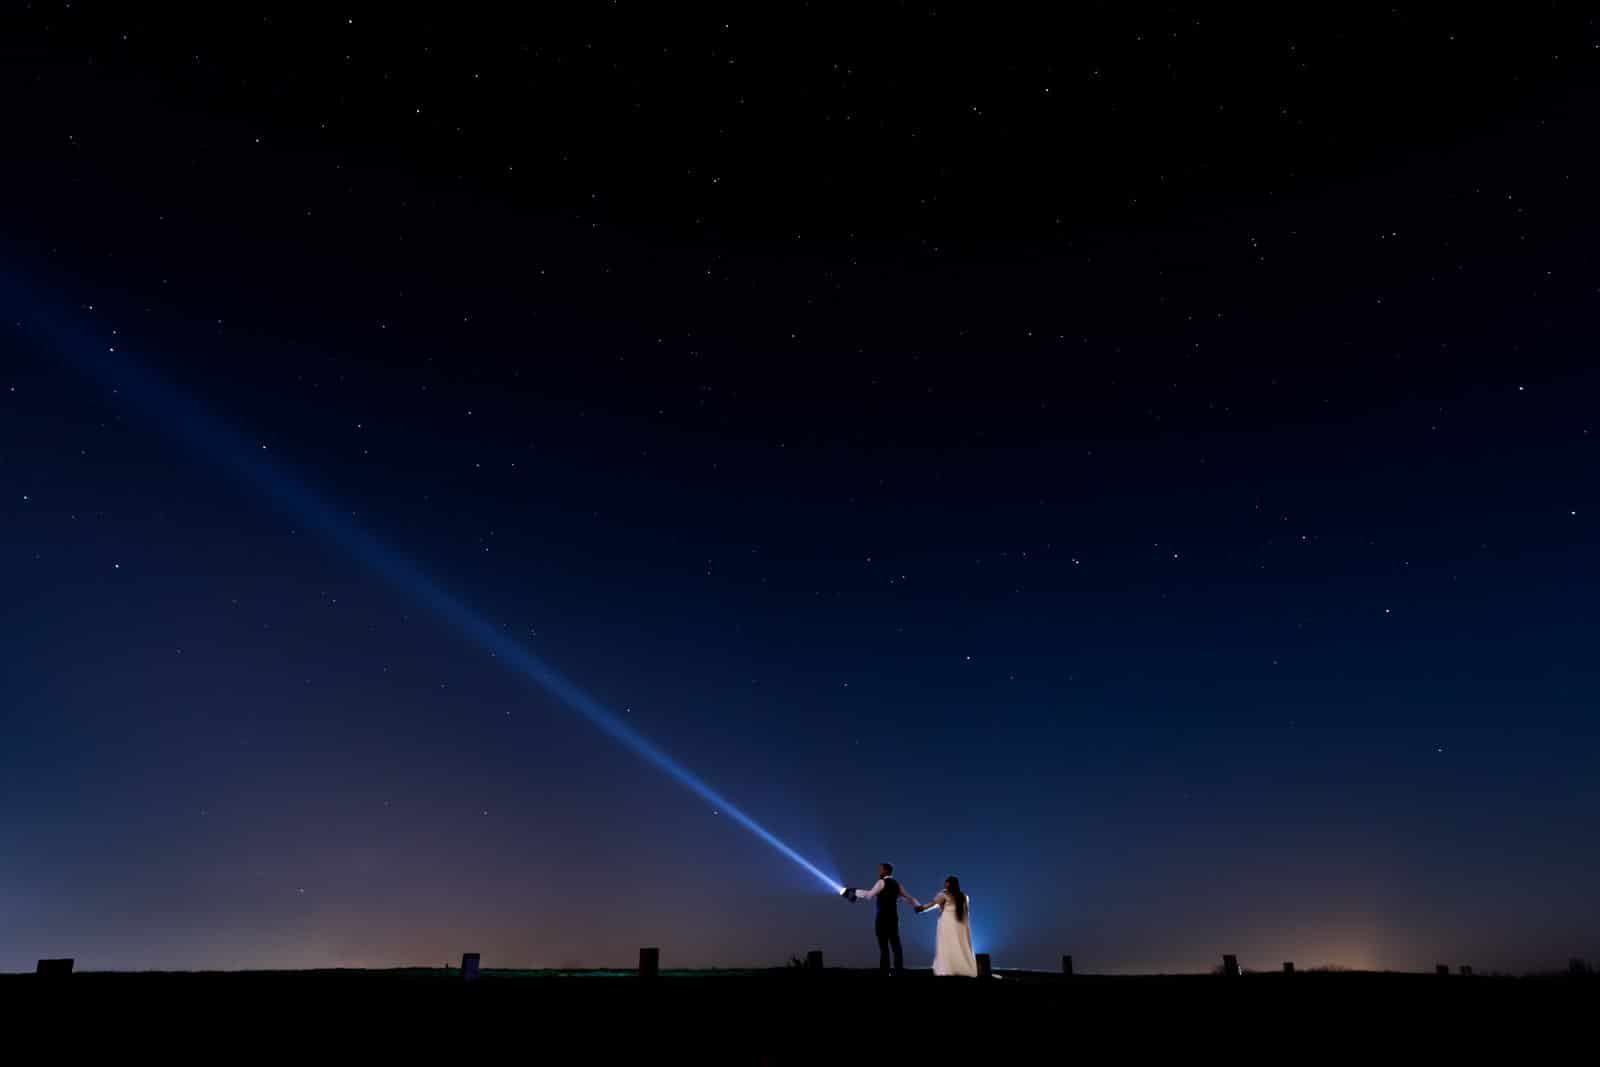 Winter Wedding at Dodford Manor, Creative photo of couple at night with stars and a torch